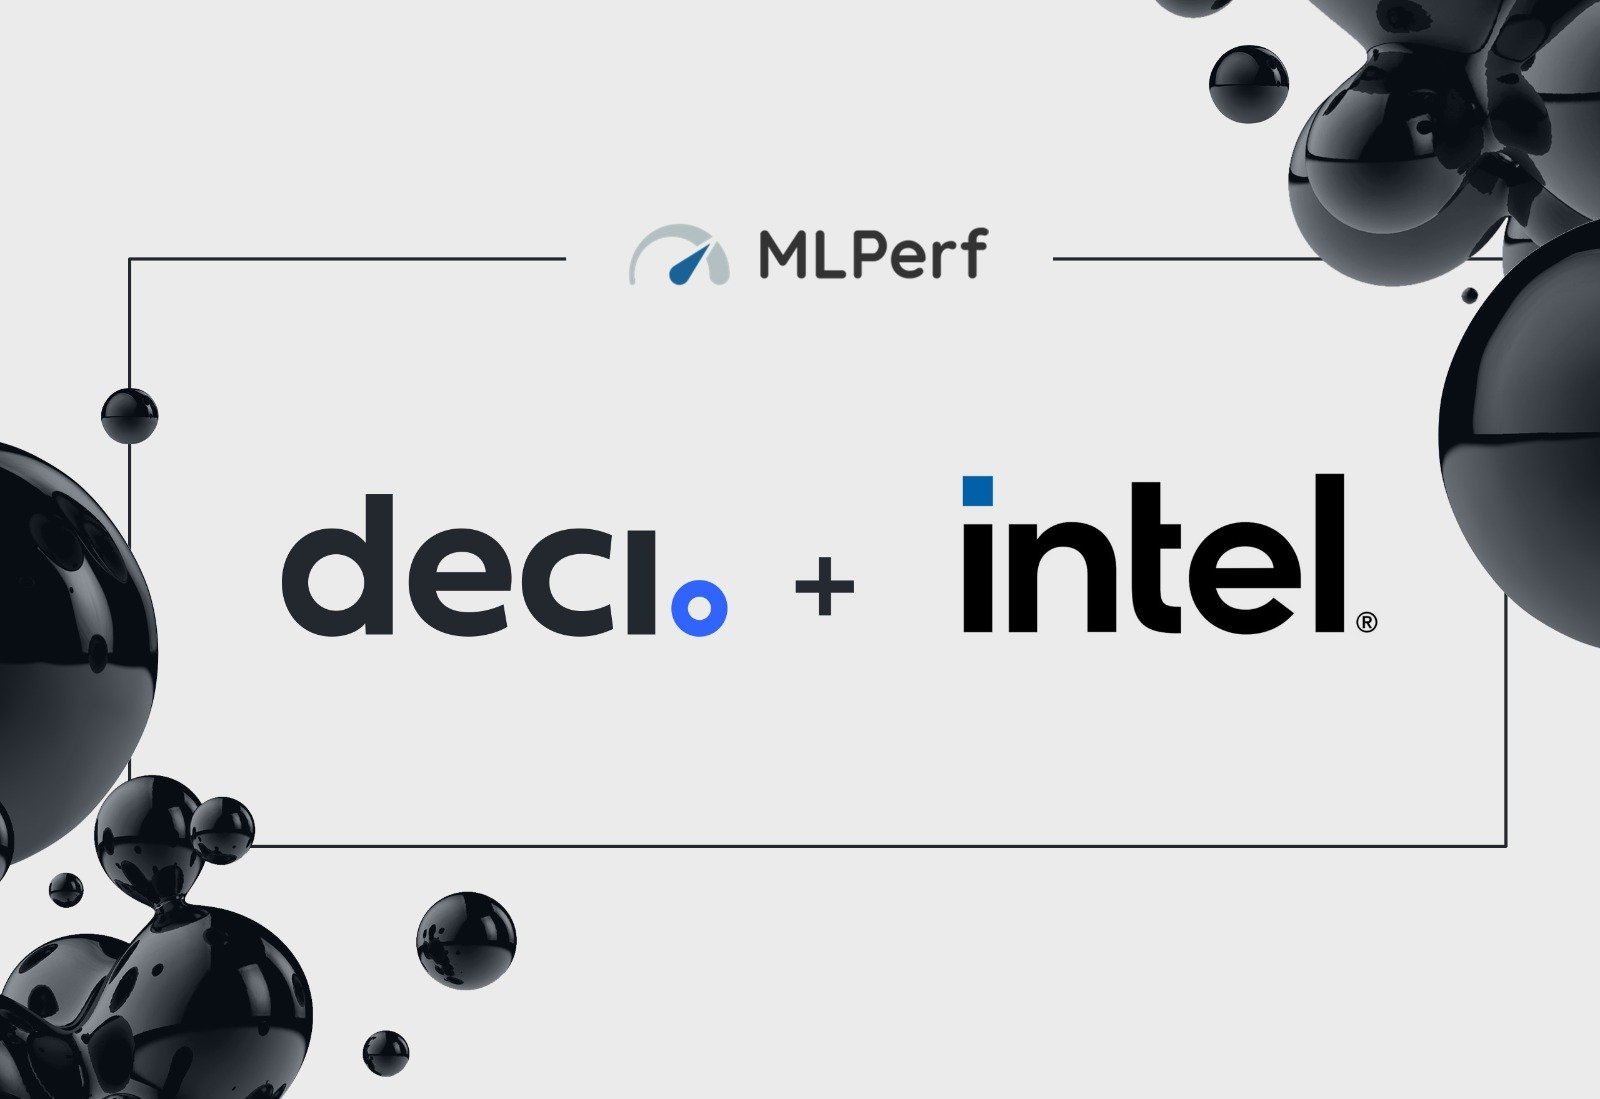 deci intel mlperf featured image